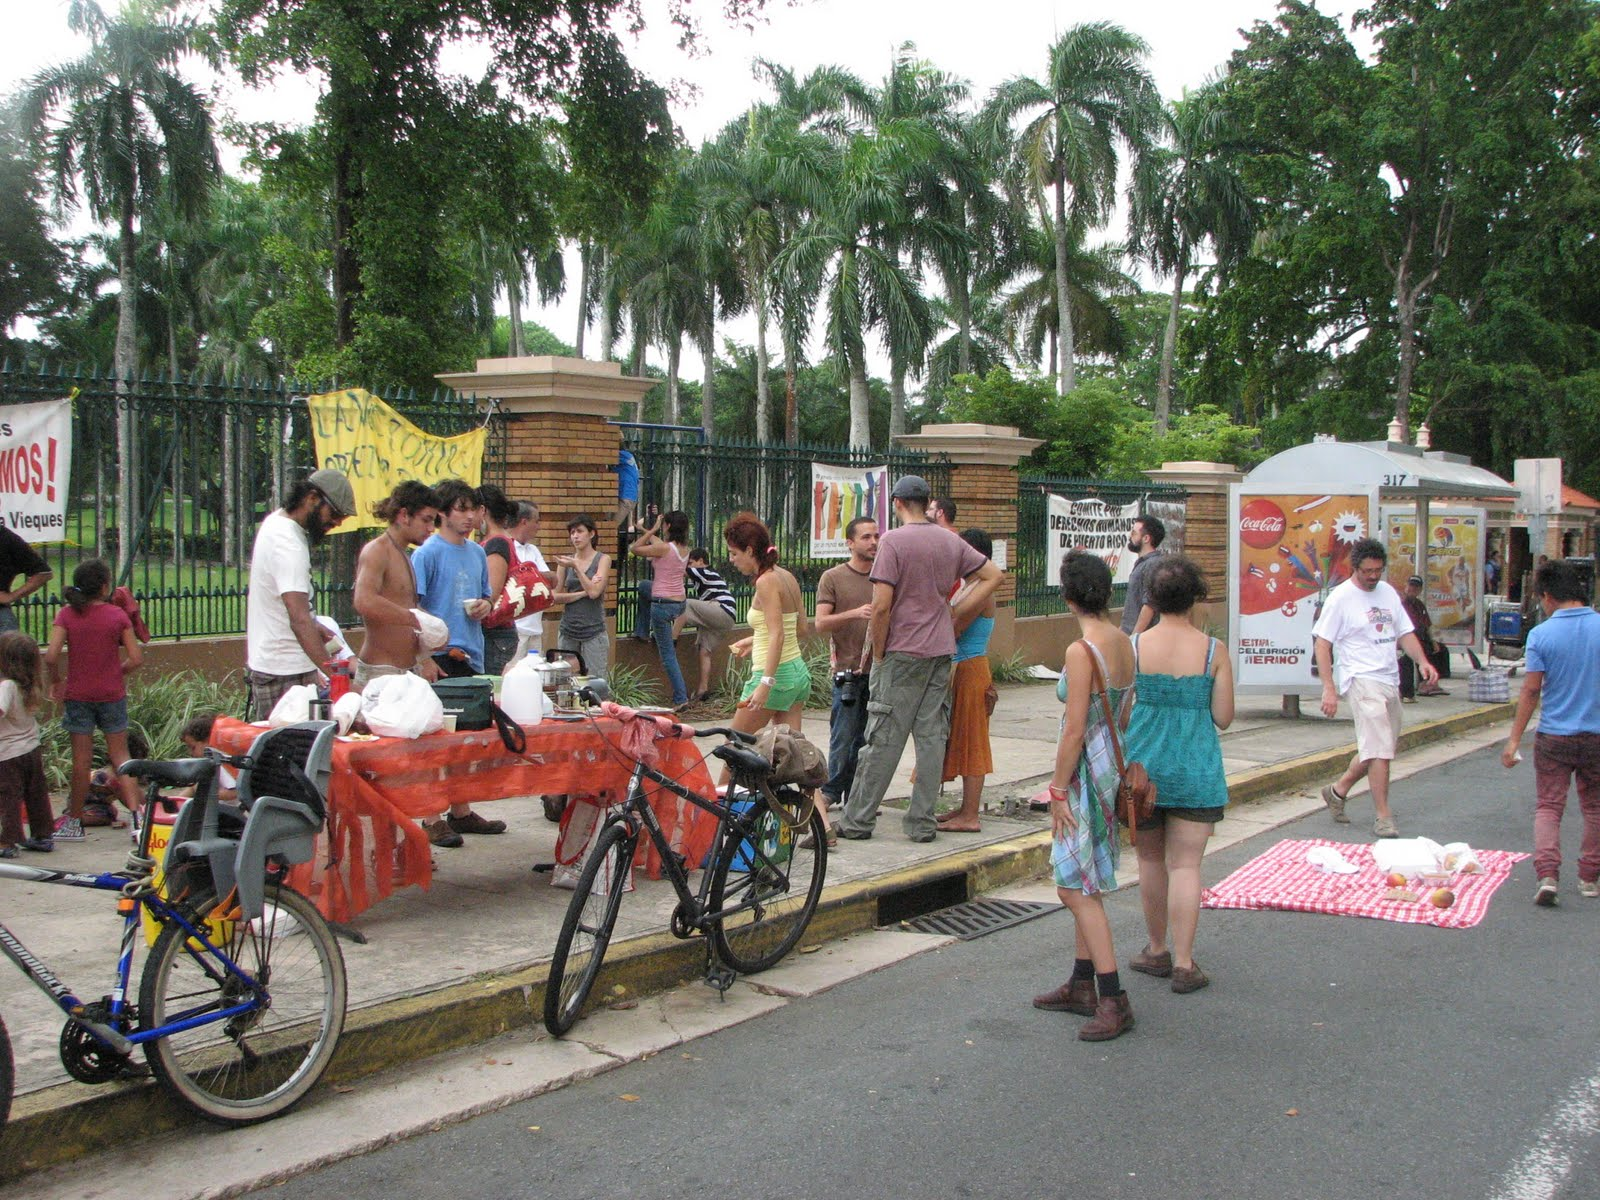 Desayuno Calle #17, 2010. Public breakfast in front of the University of Puerto Rico gates in solidarity to the student strike movement against budget cuts and an increase in tuition fees.